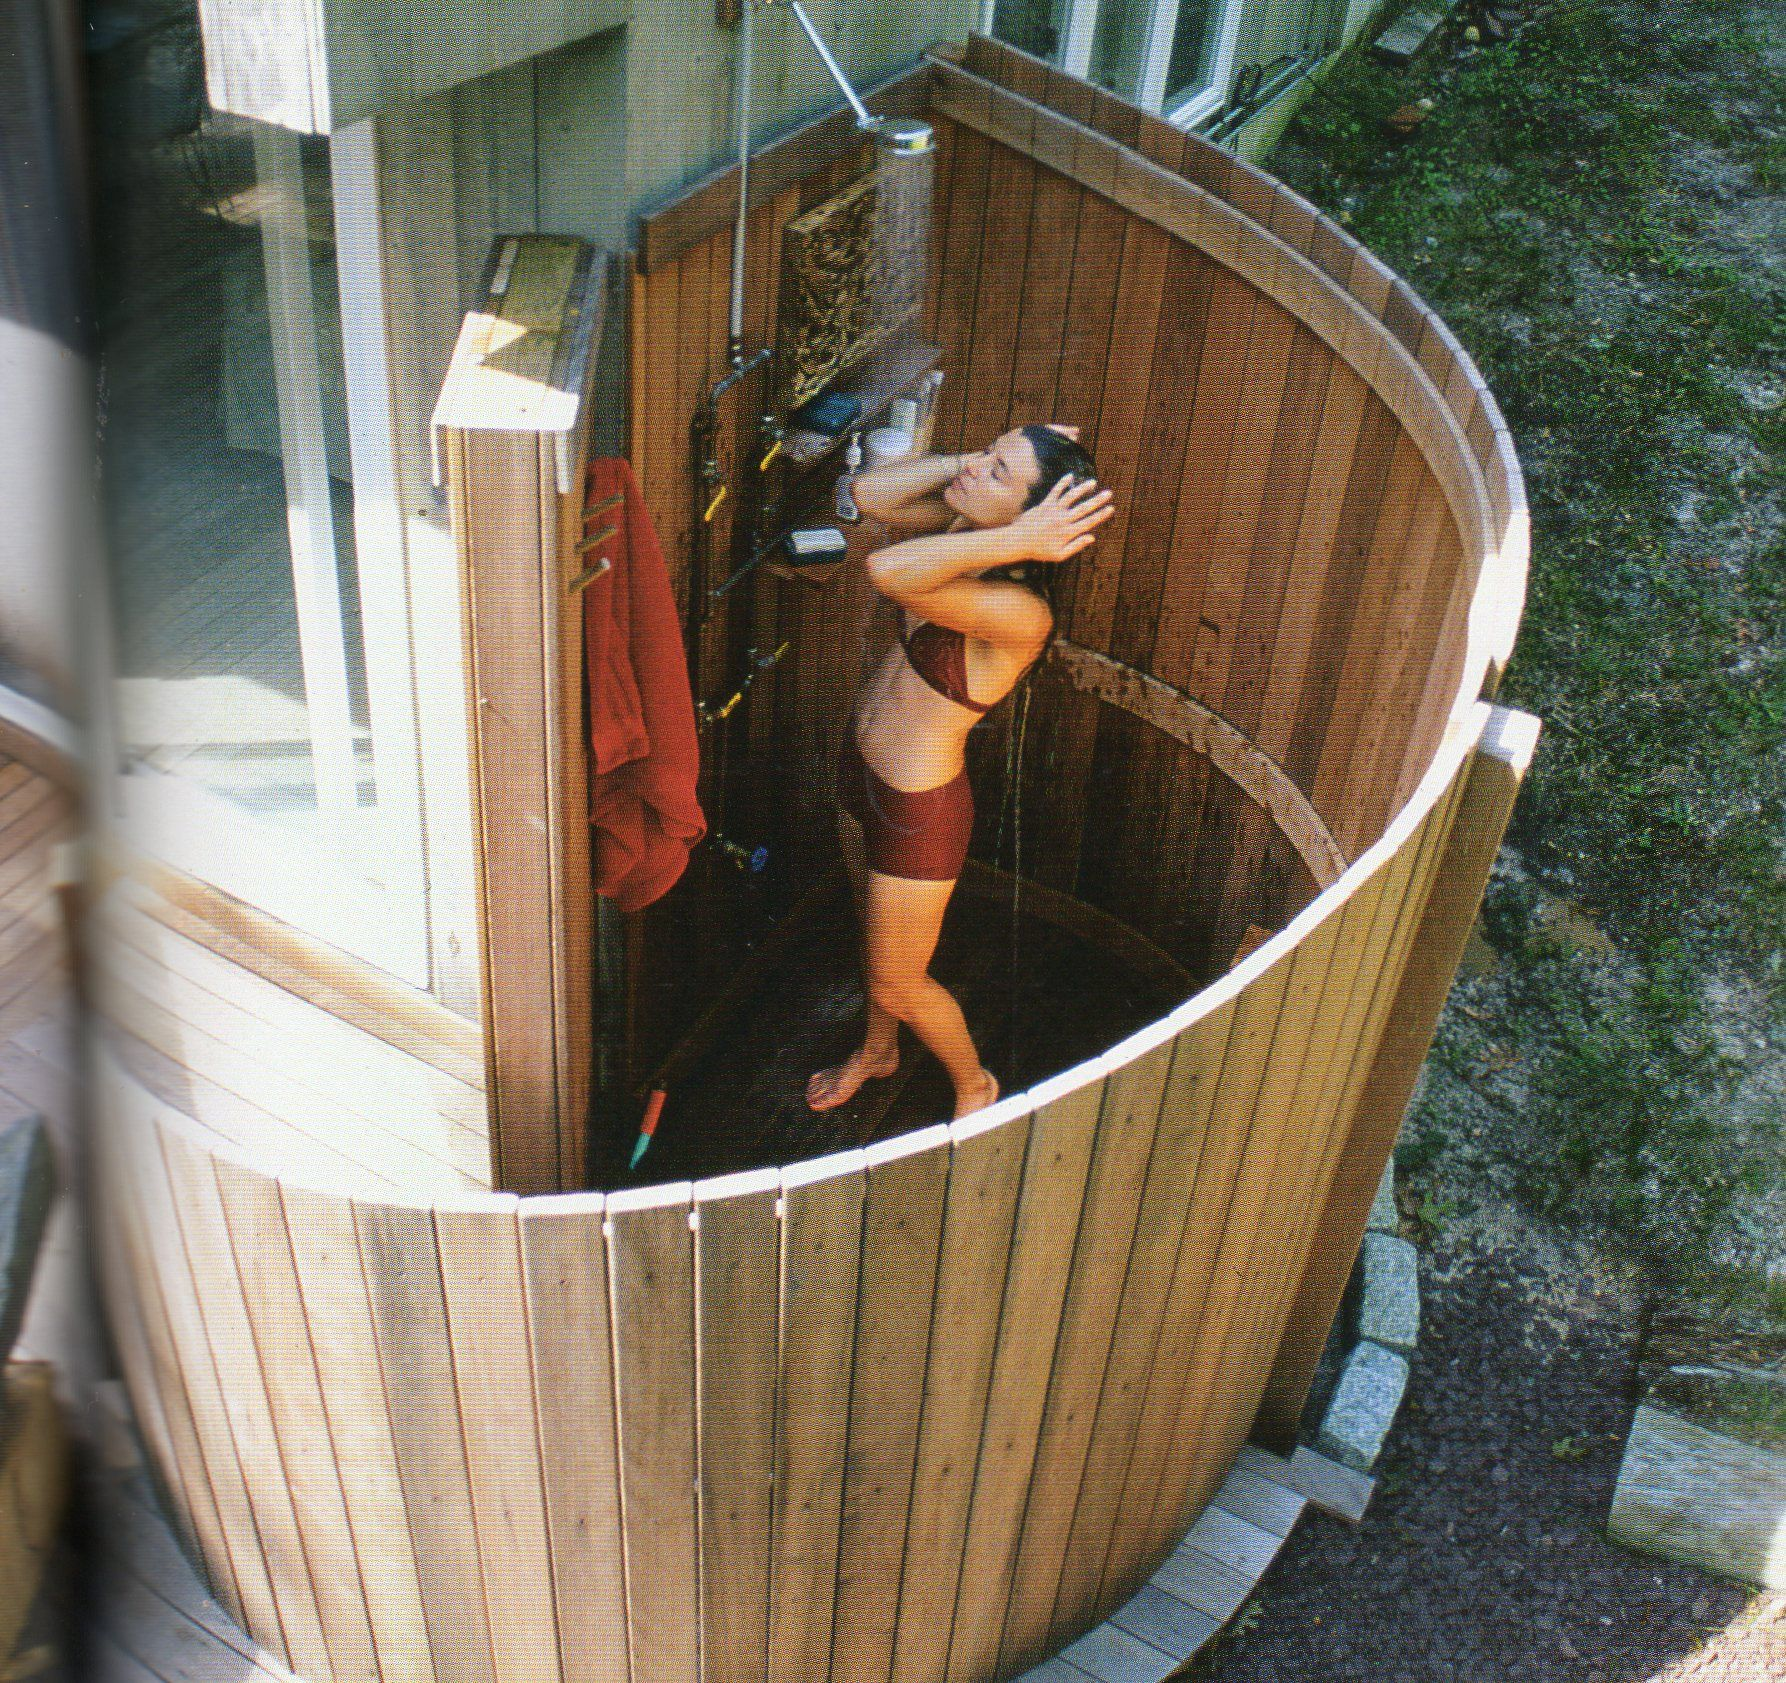 Bamboo Outdoor Shower Enclosures Outdoor Shower Love The Round Fenced Wall Outdoor Living